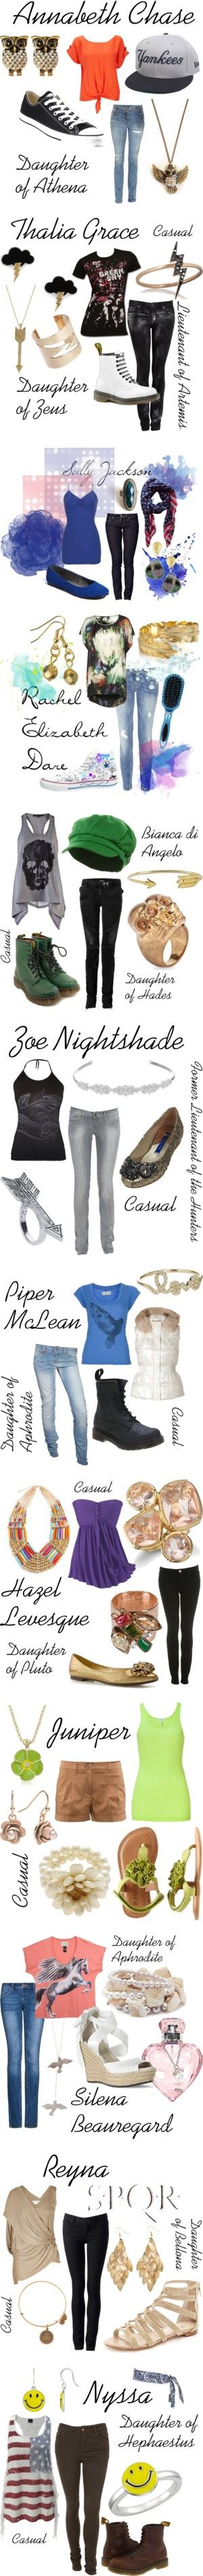 """Percy Jackson: Characters"" by ellalea ❤ liked on Polyvore"